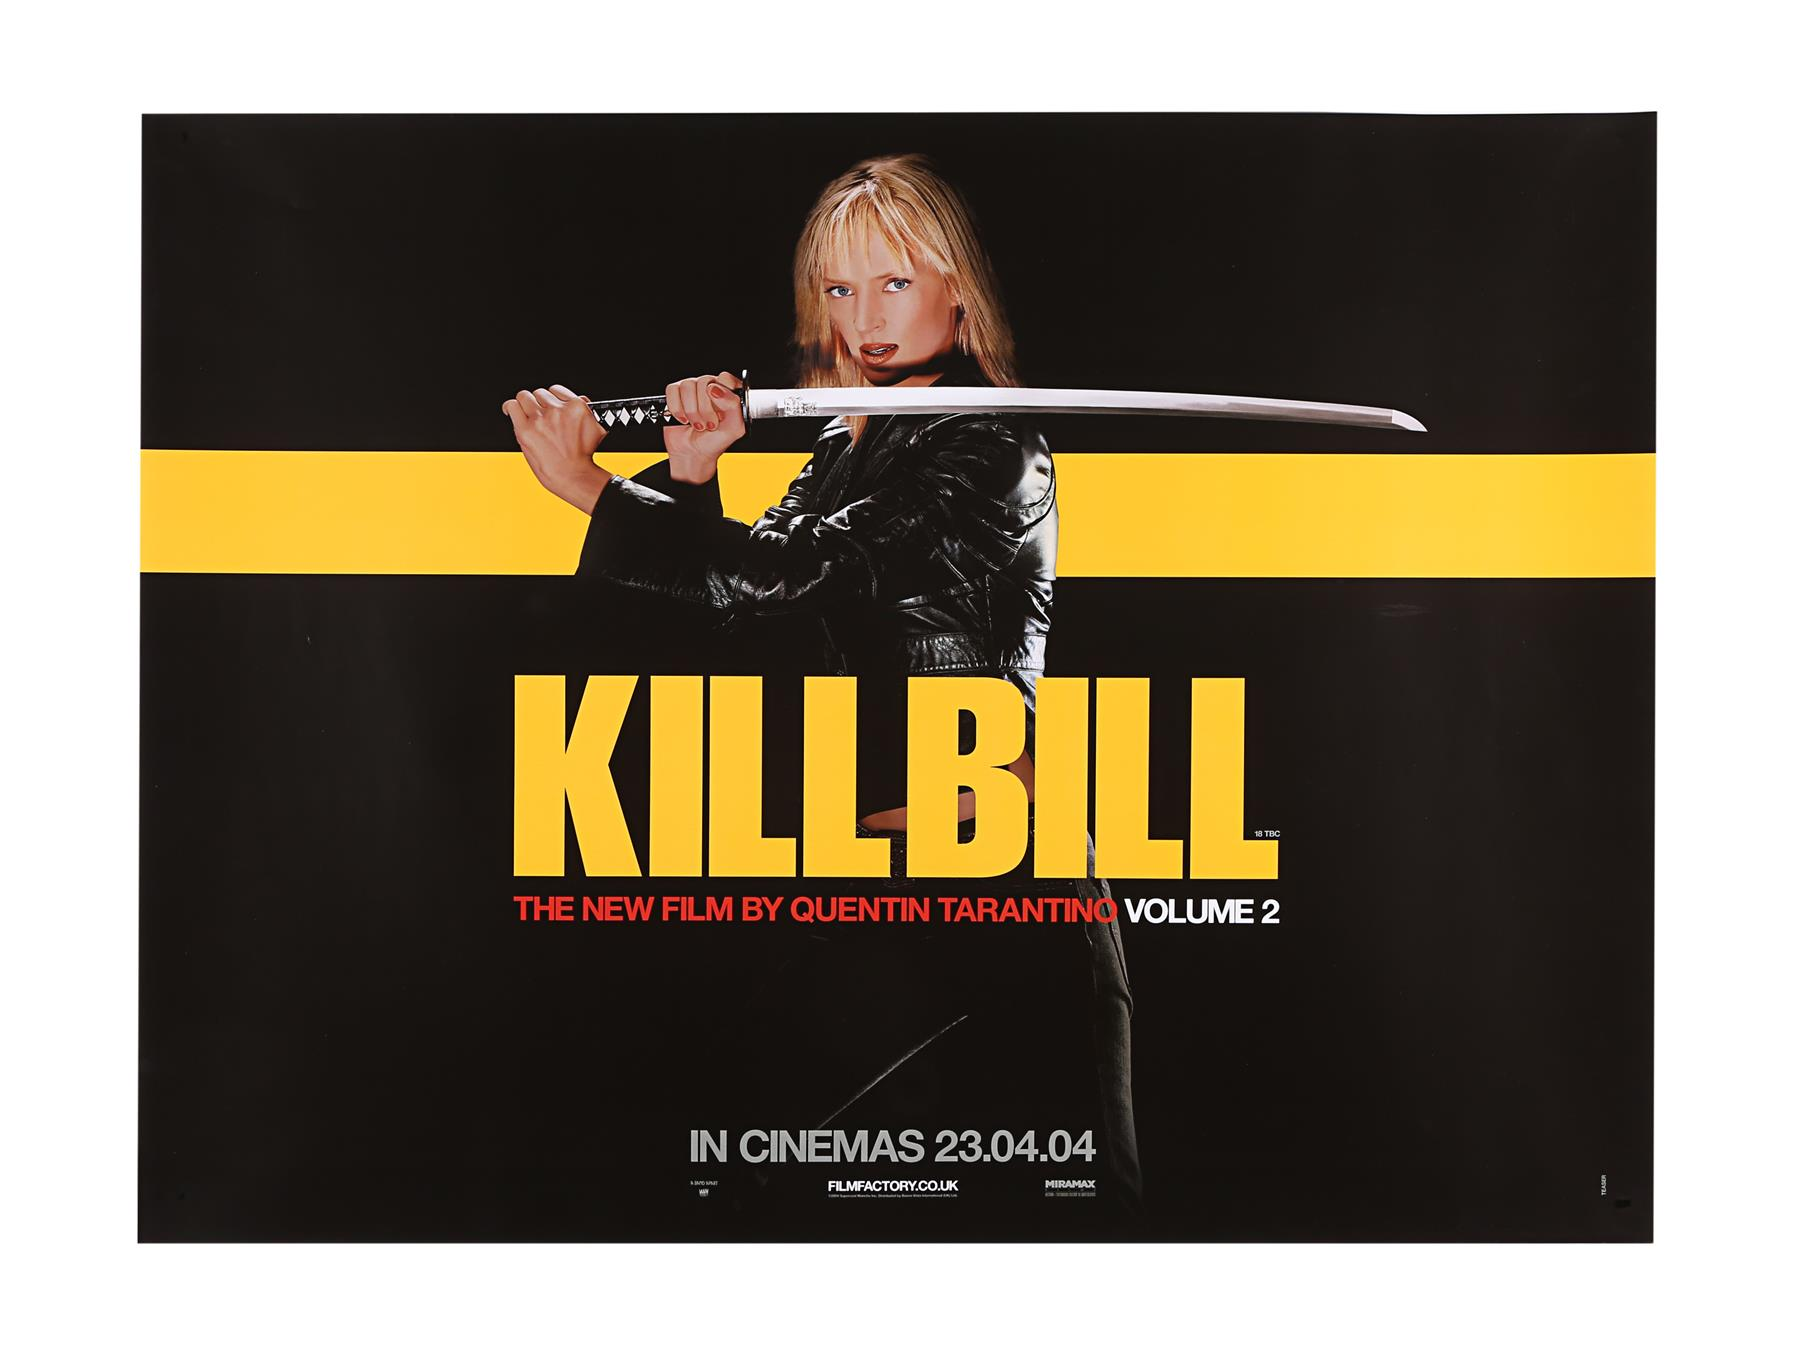 KILL BILL (2003), KILL BILL: VOLUME II (2004) - Two UK Quads, 2003 and 2004 - Image 2 of 9